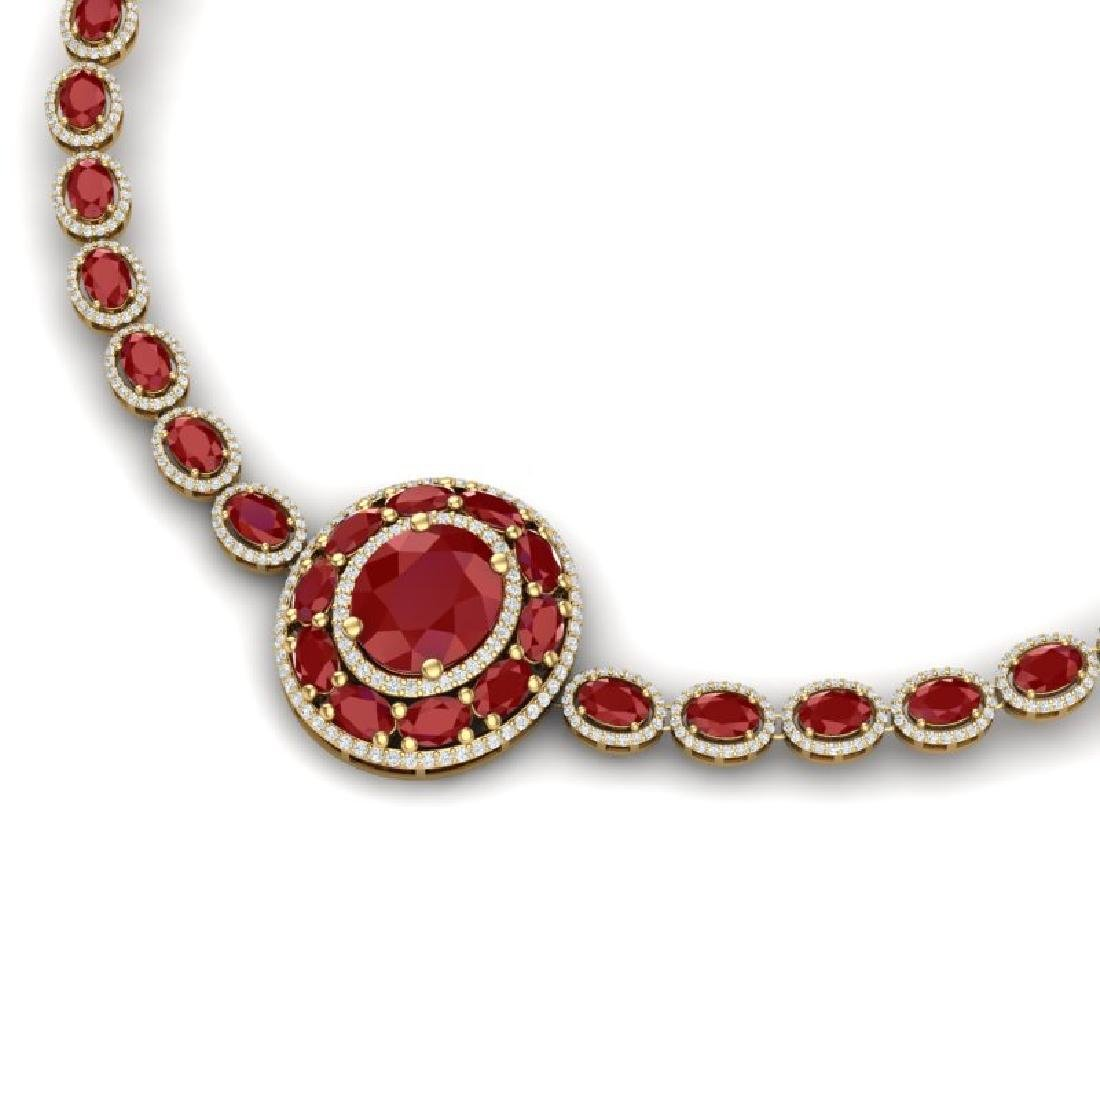 43.54 CTW Royalty Ruby & VS Diamond Necklace 18K Yellow